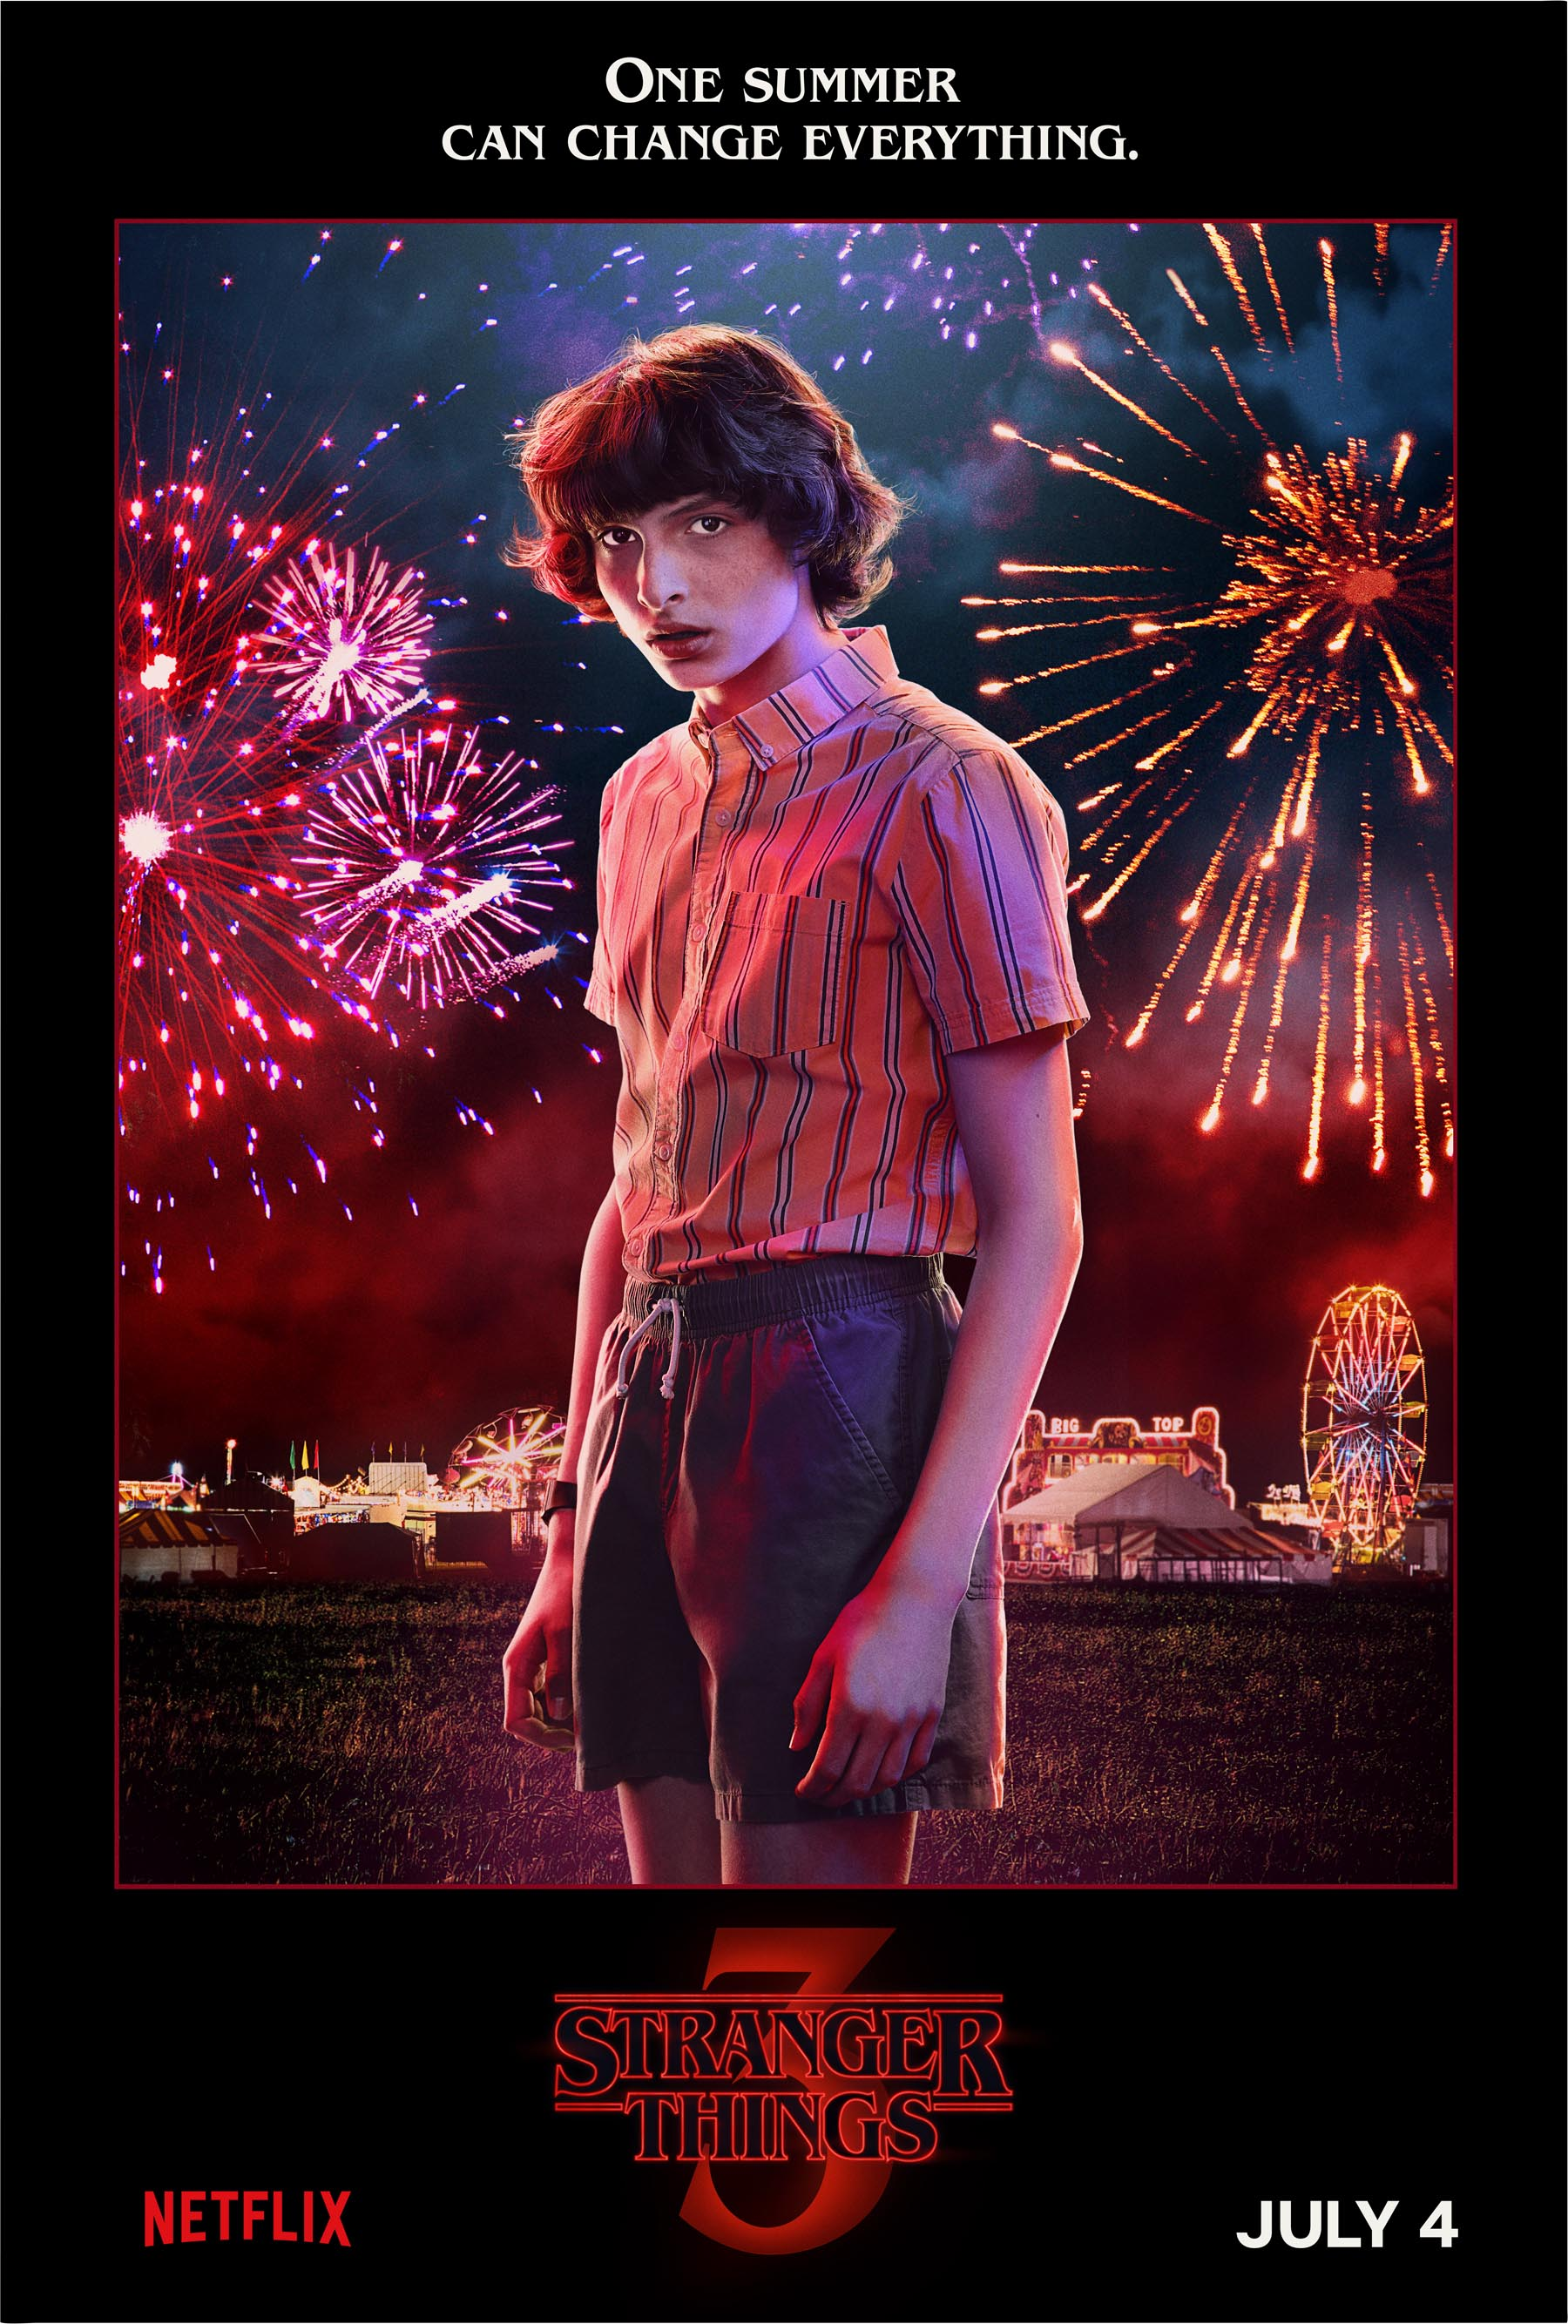 Stranger Things 3 Character poster CR: Netflix